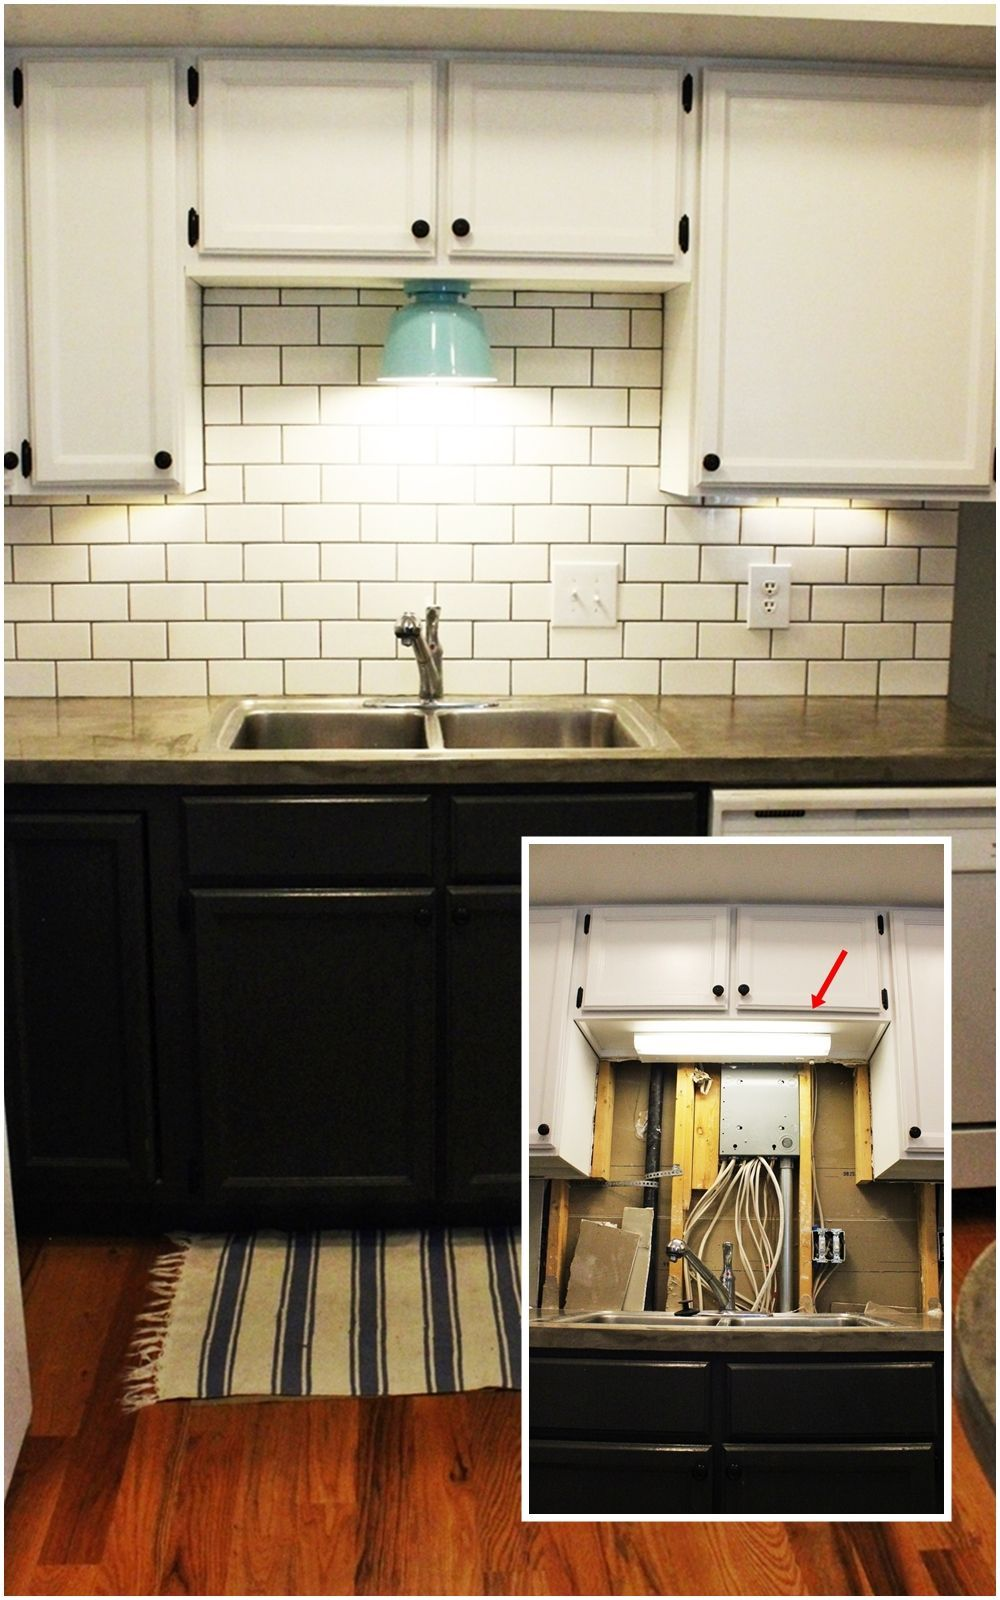 Diy Kitchen Lighting Upgrade Led Under Cabinet Lights